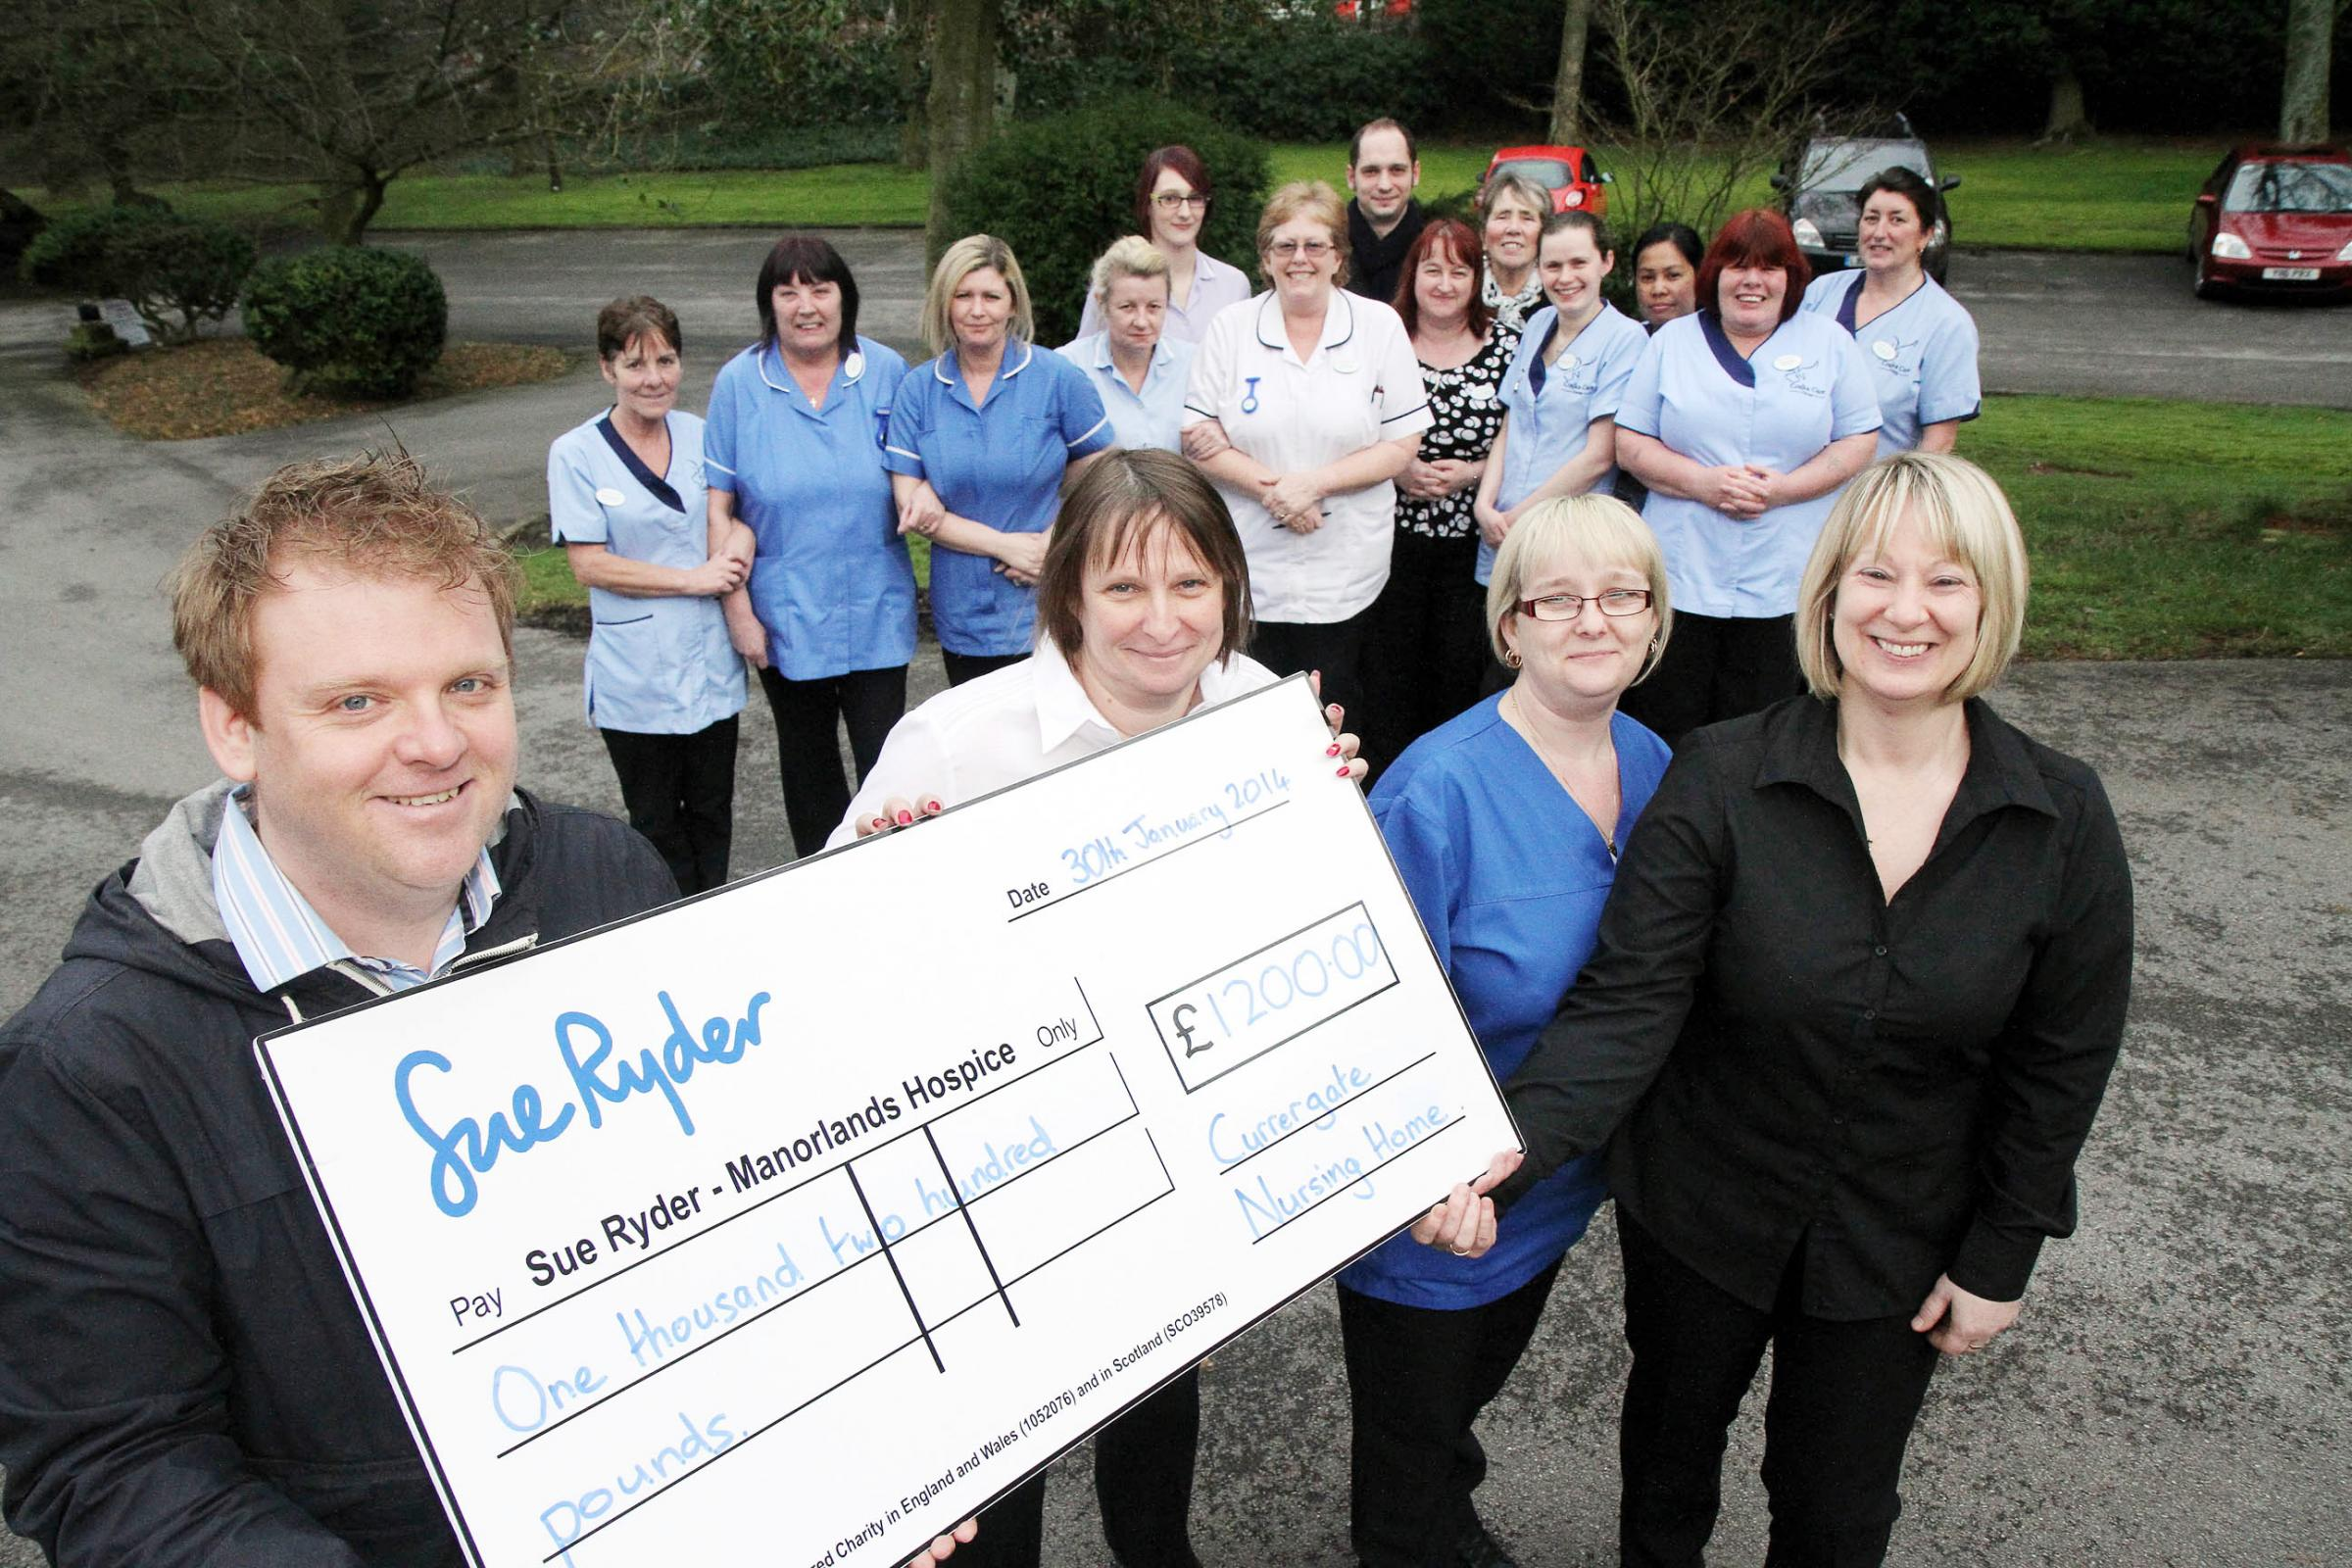 Manorlands fundraiser Andrew Wood, left, receives the cheque from staff at Currergate Nursing Home, Steeton